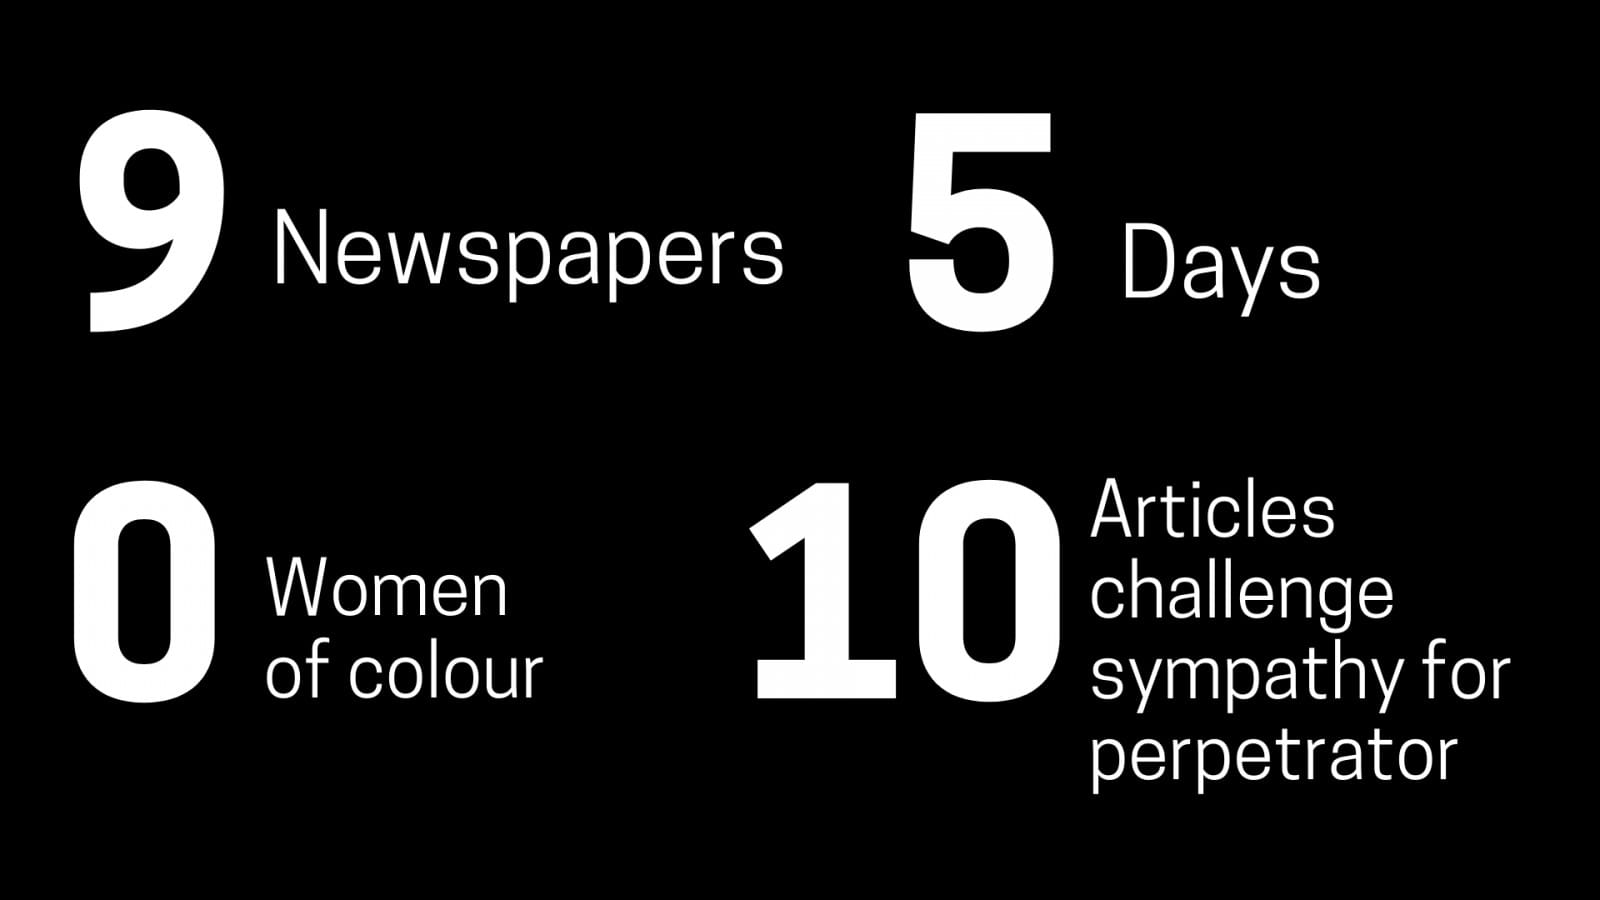 9 newspapers, 5 days, 0 women of colour, 10 articles challenges sympathy for the perpetrator